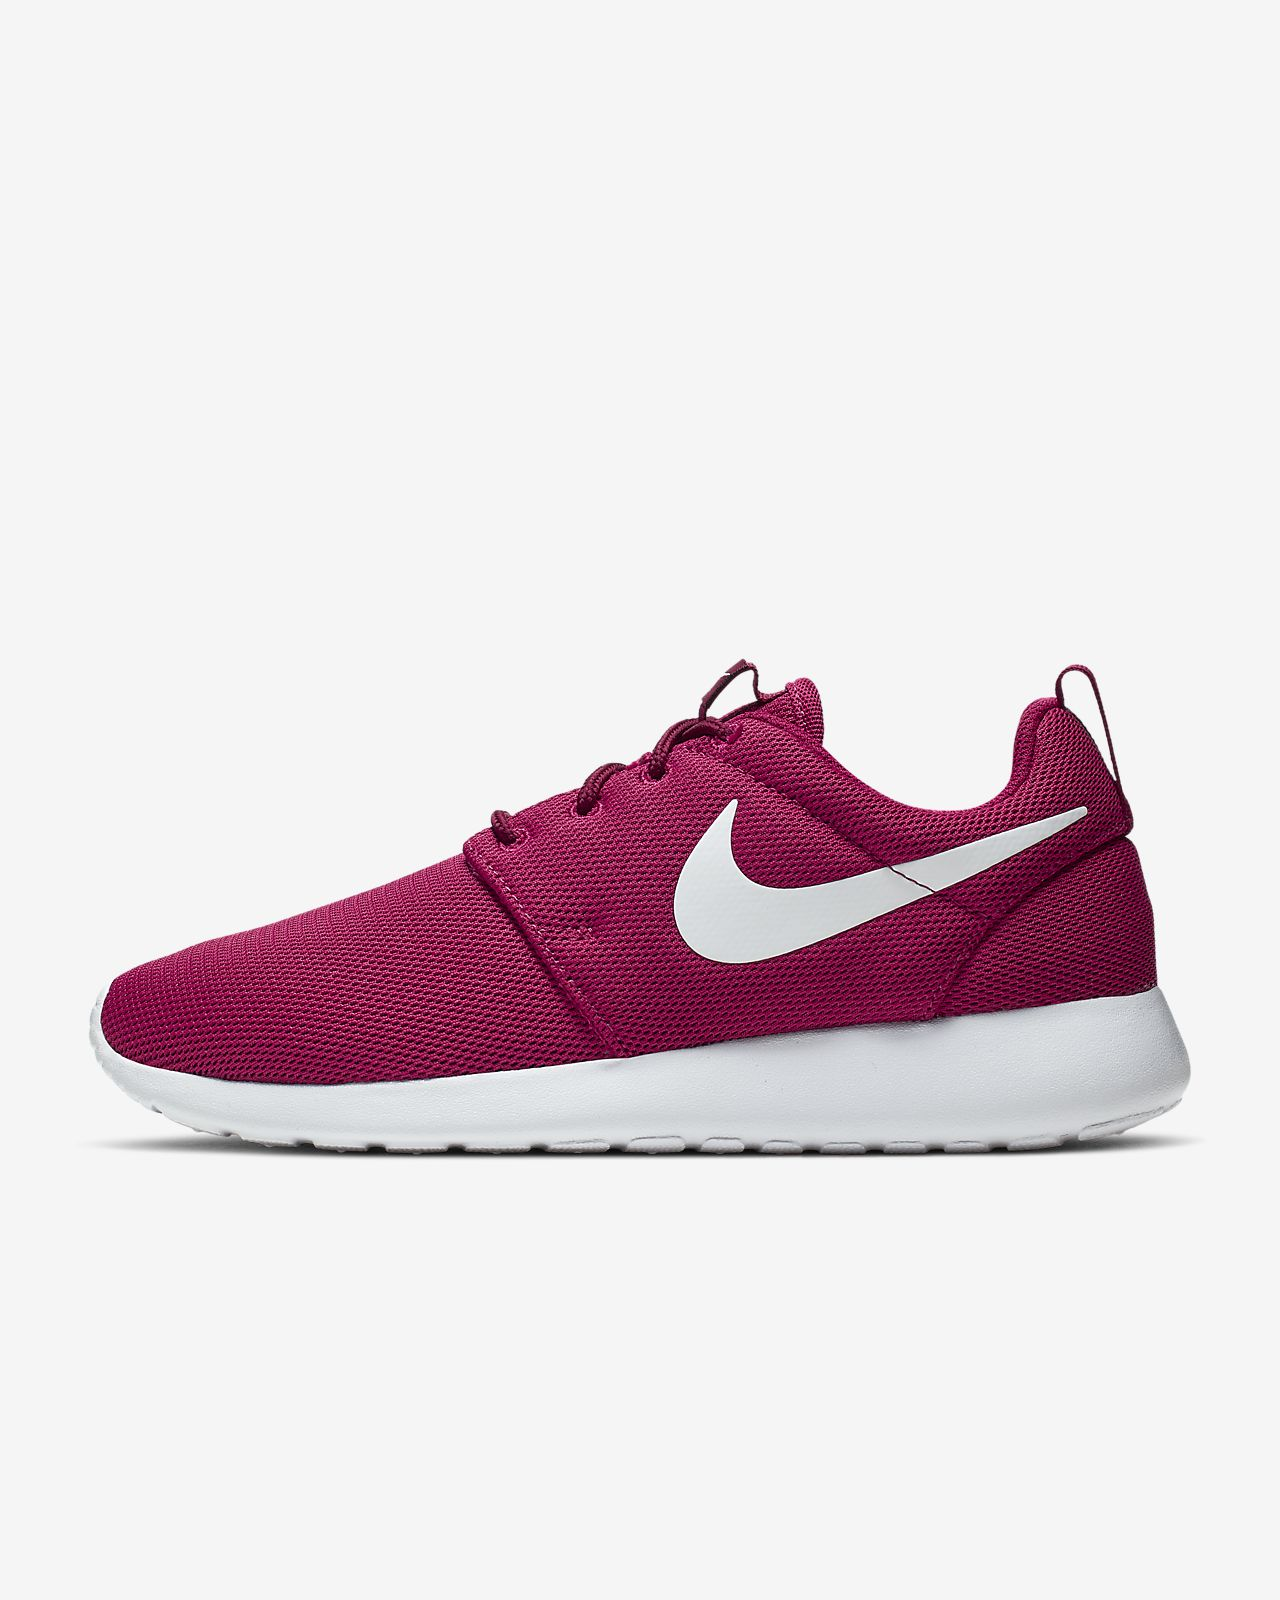 the latest f8214 5d71b Nike Roshe One Women's Shoe